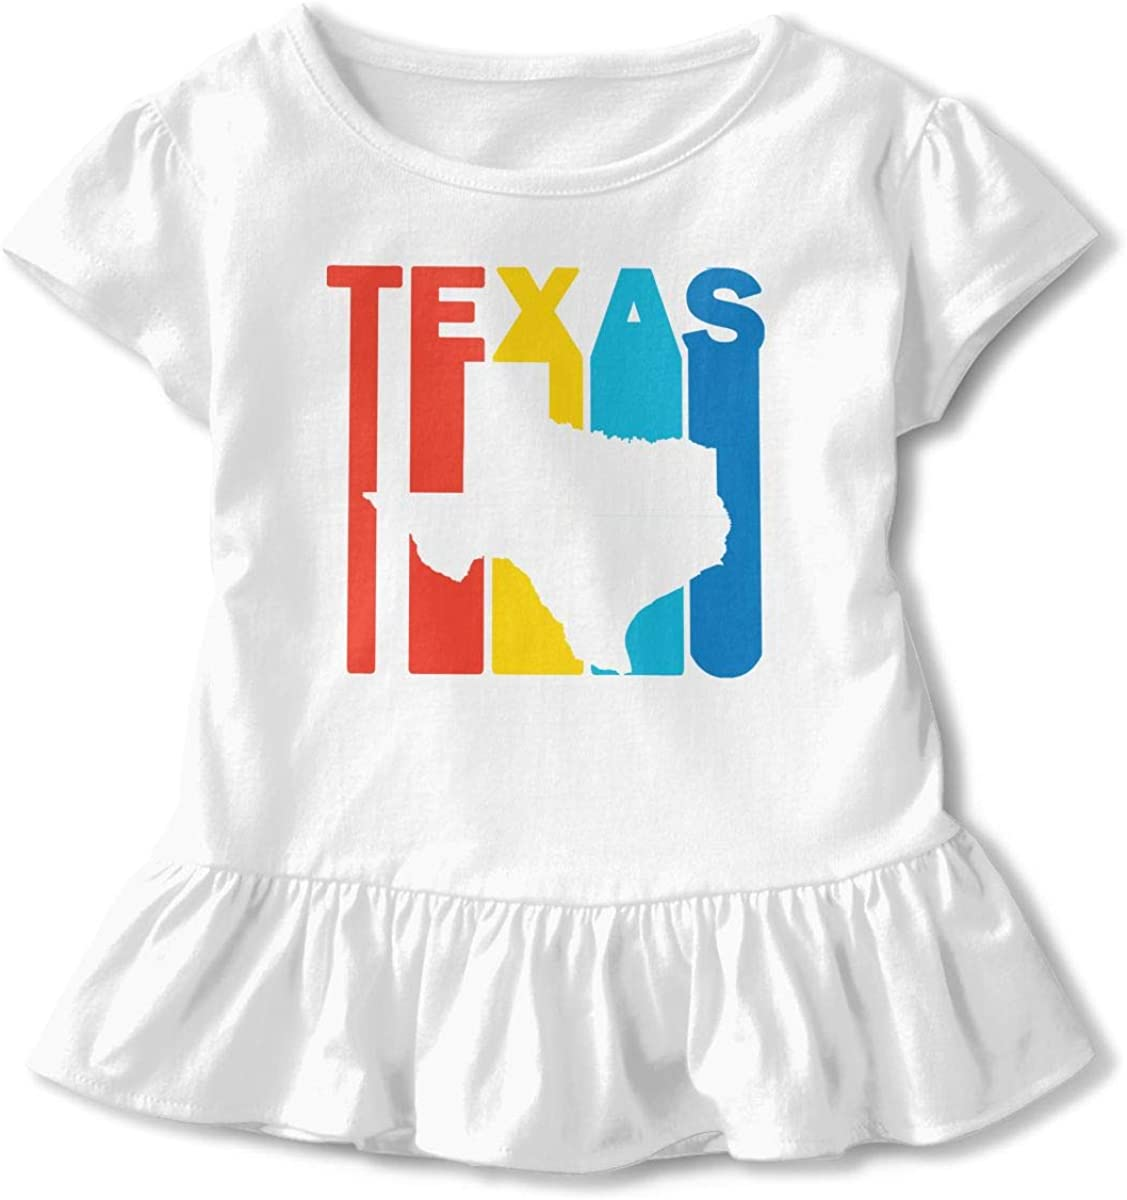 Retro Texas Kids Boys Girls Crewneck Short Sleeve Shirt T-Shirt for Toddlers